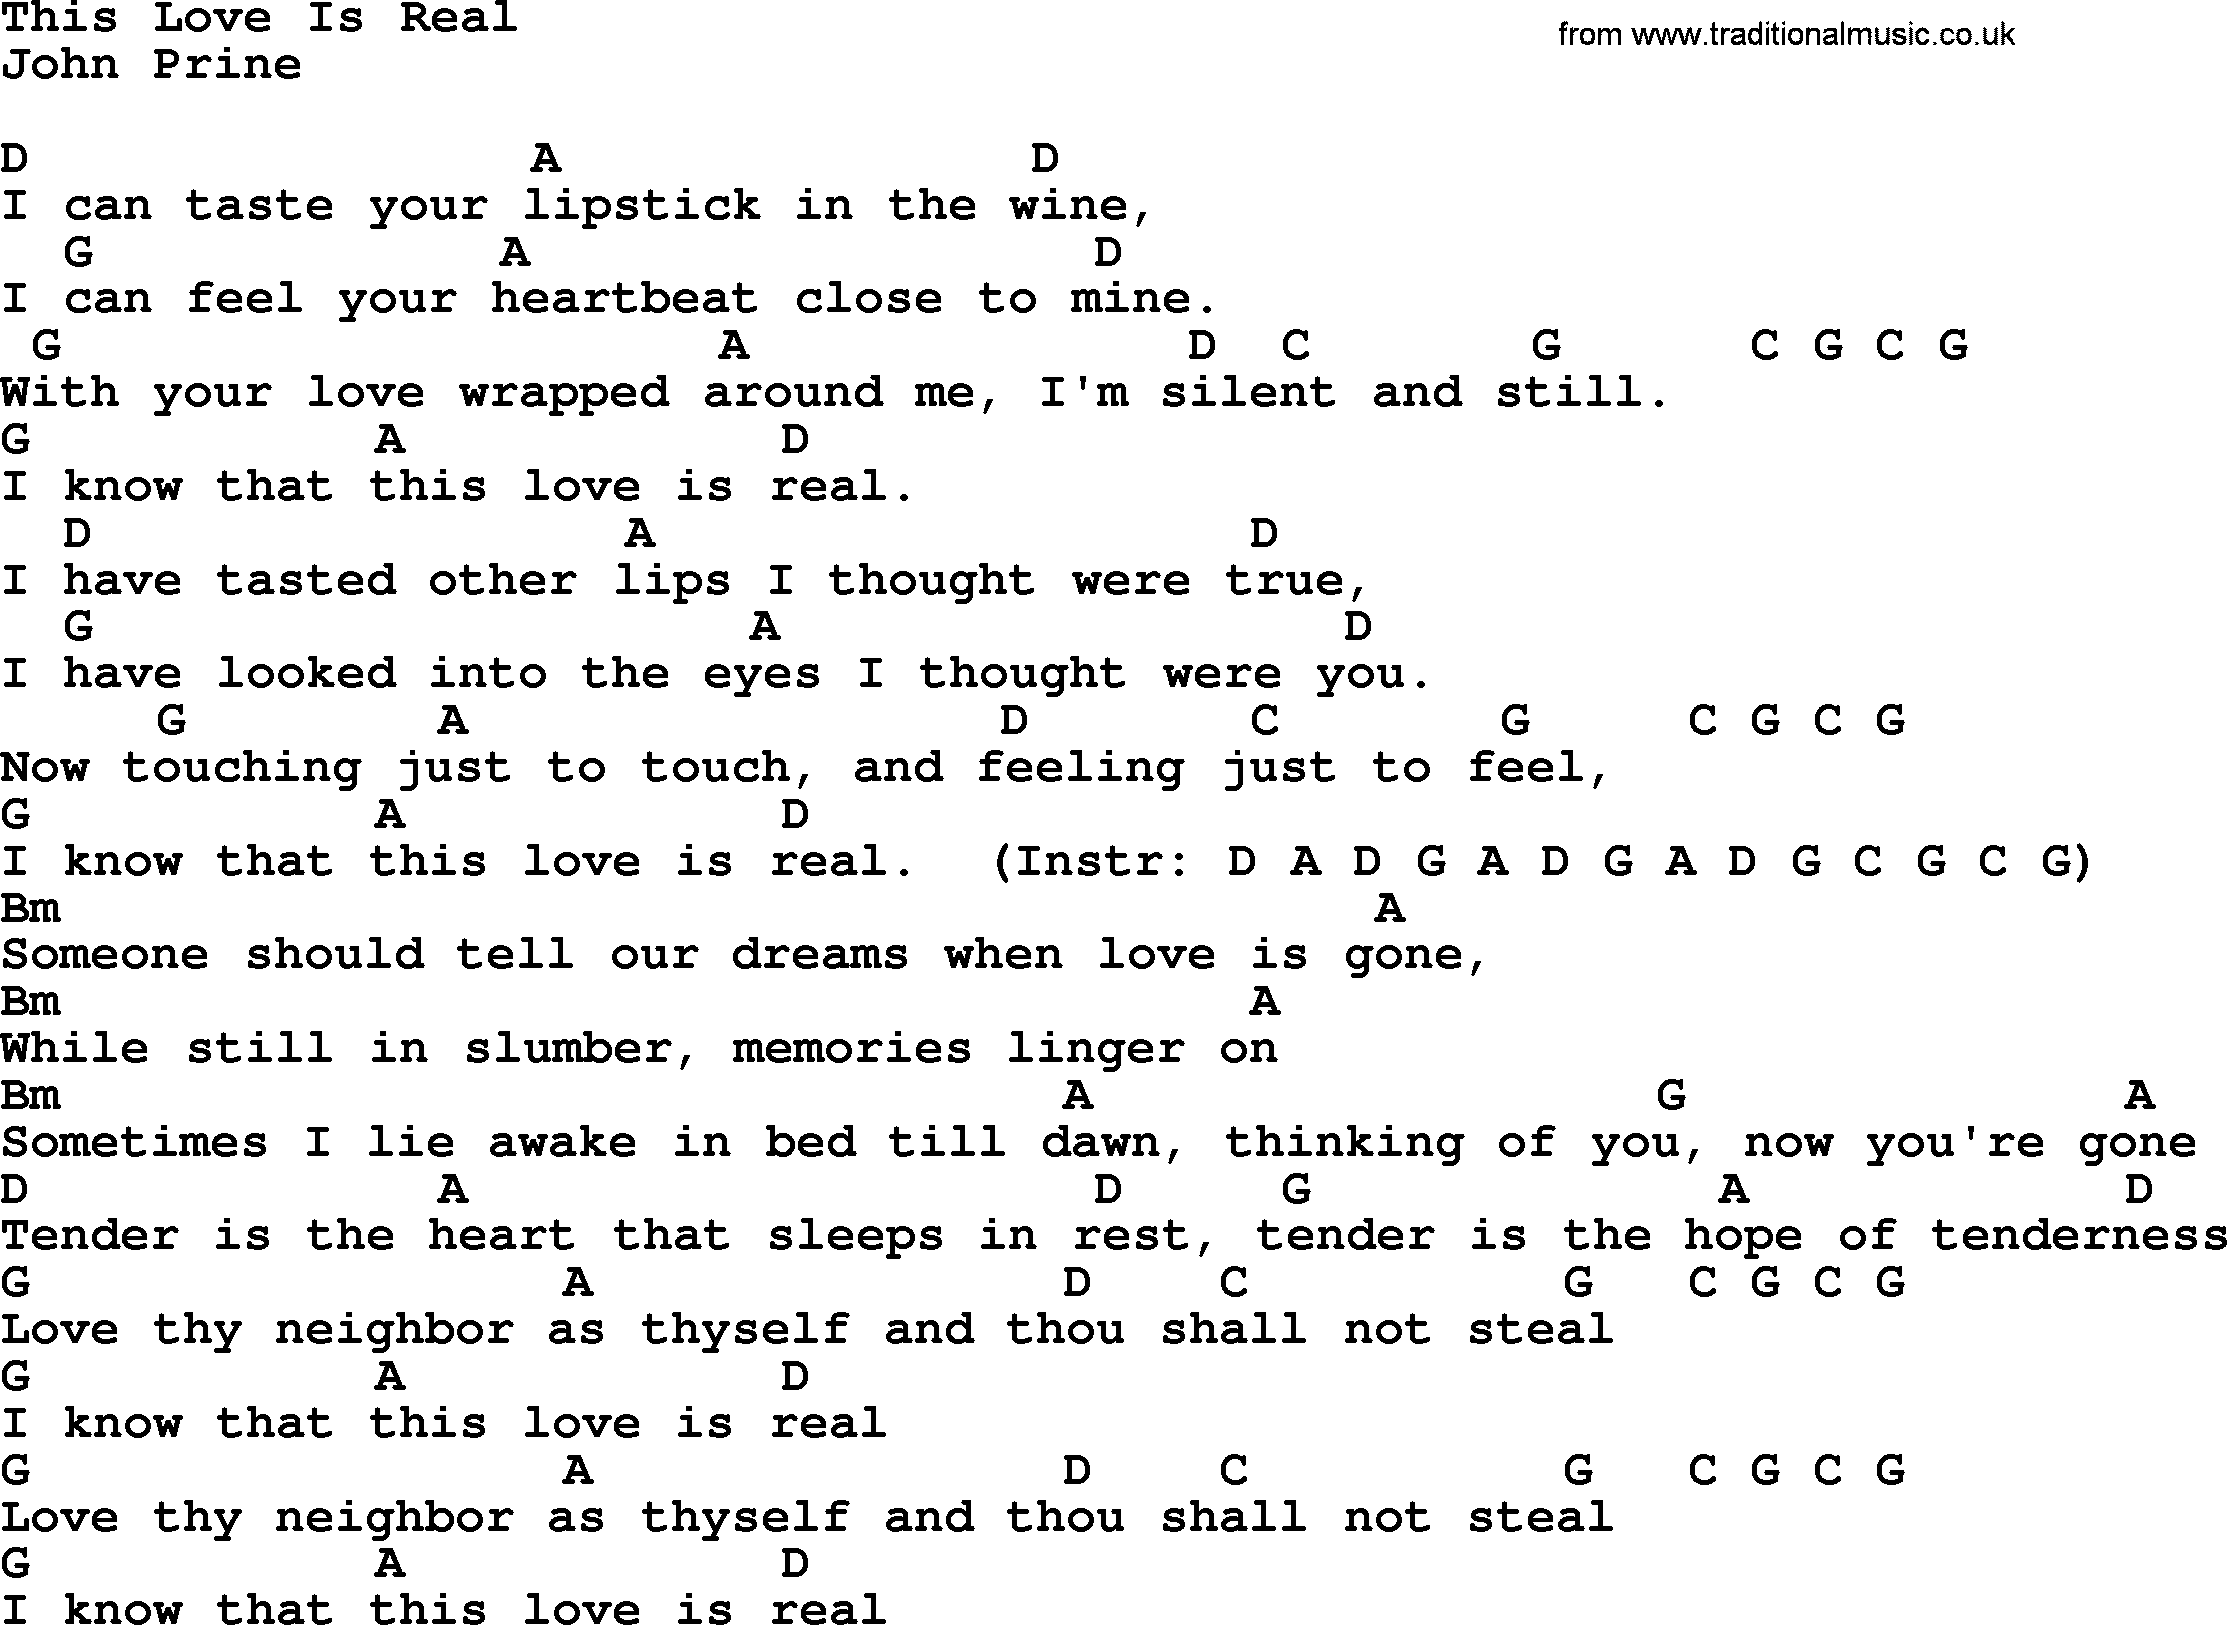 This Love Is Real - Bluegrass lyrics with chords